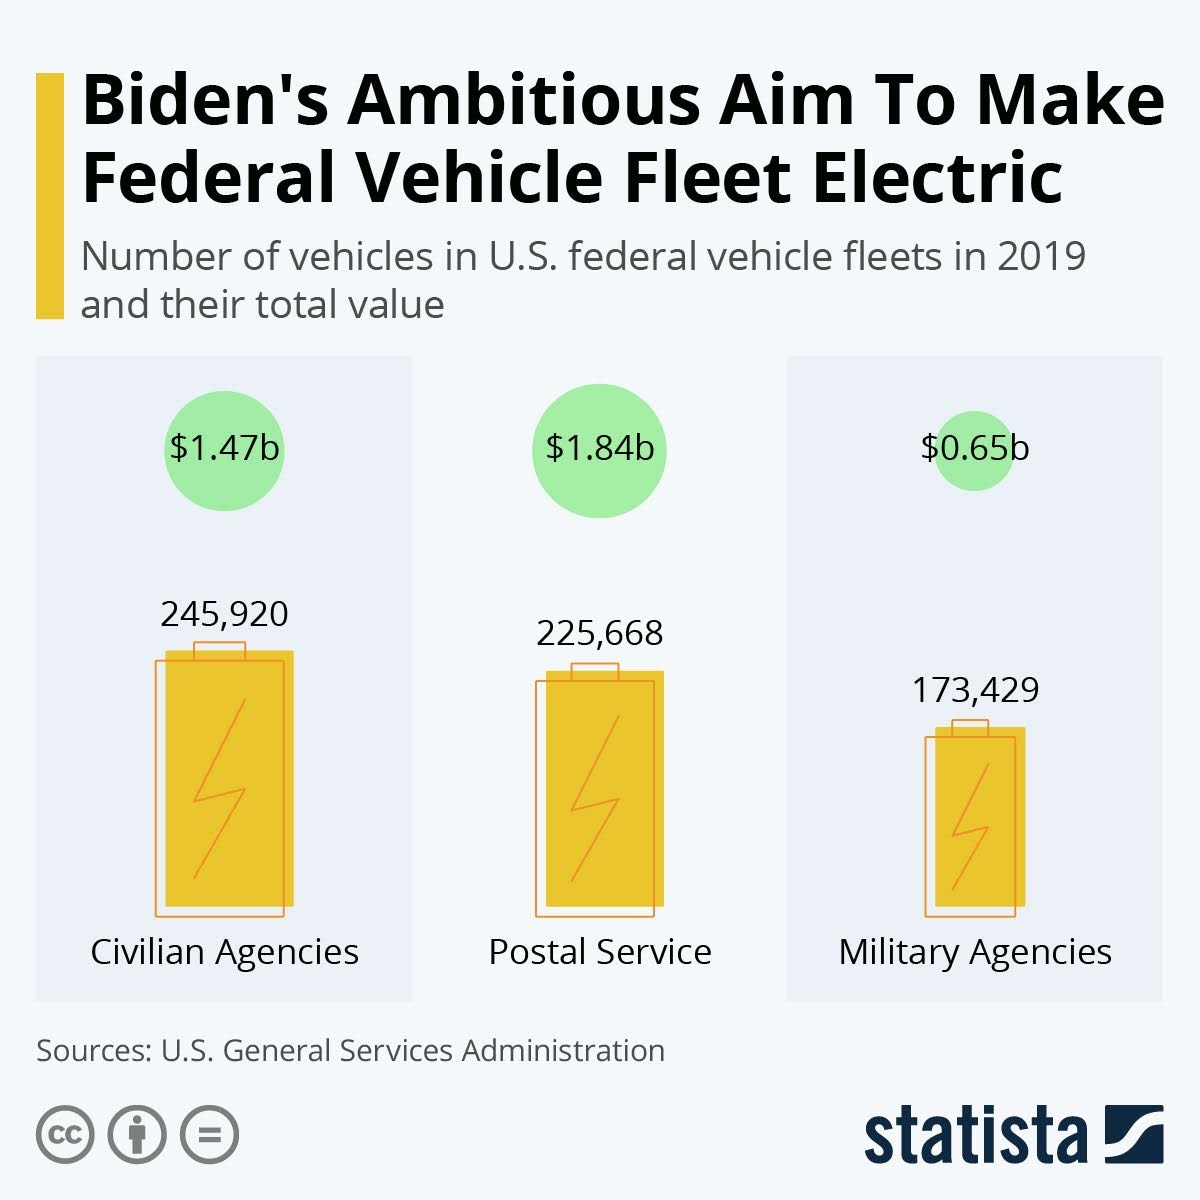 bidens-ambitious-plan-to-make-federal-vehicle-fleet-electric-infographic